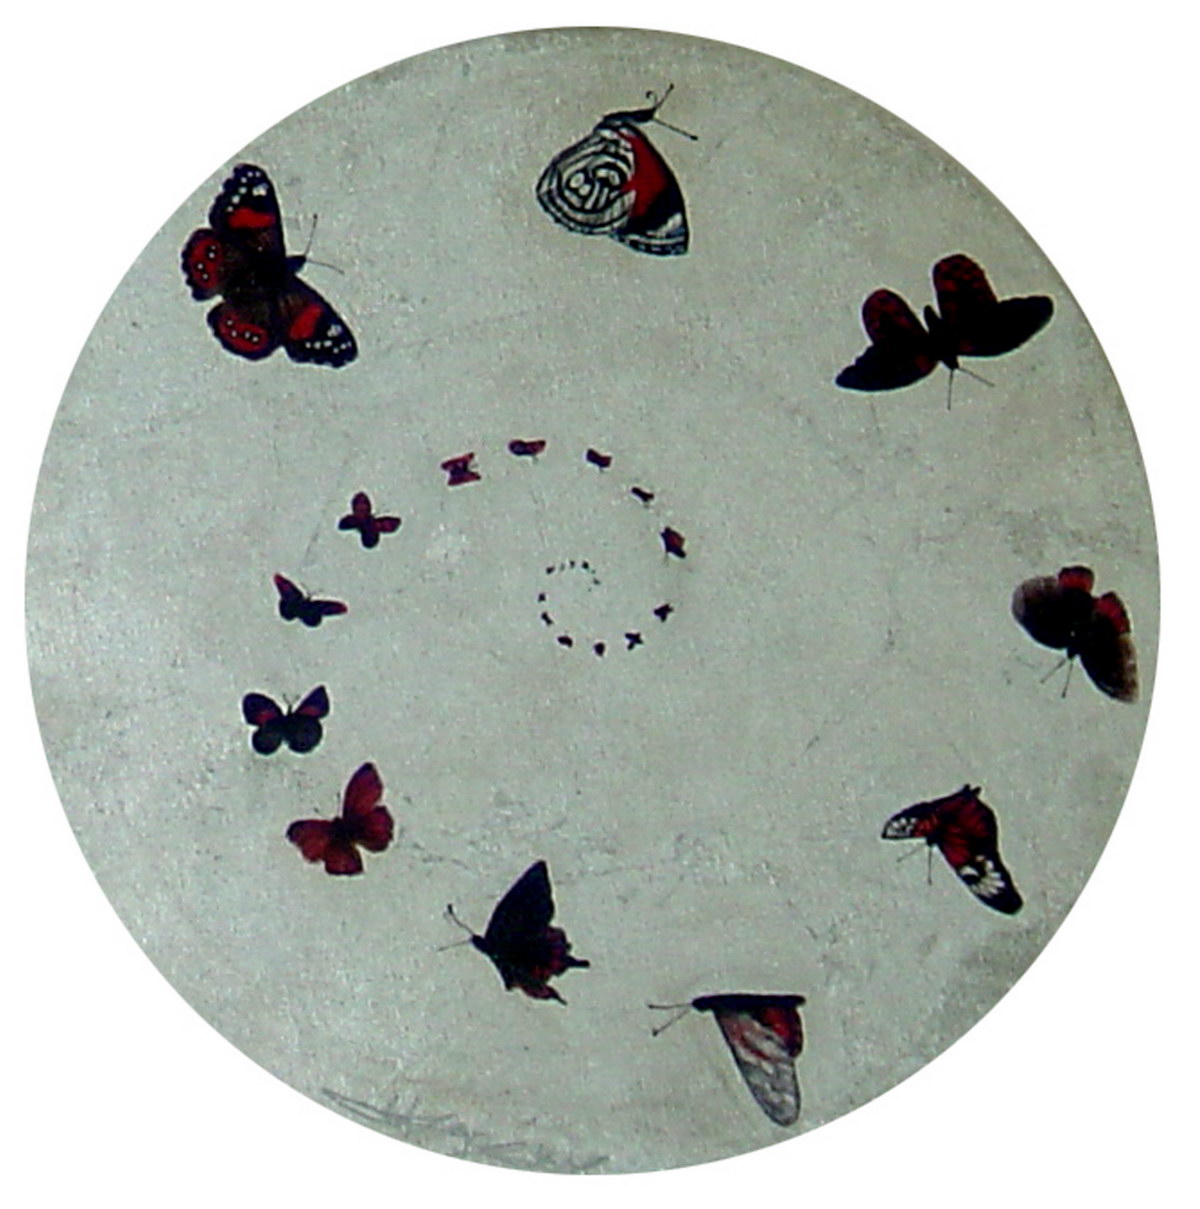 Incarnation(50cm) mixed media on round canvas